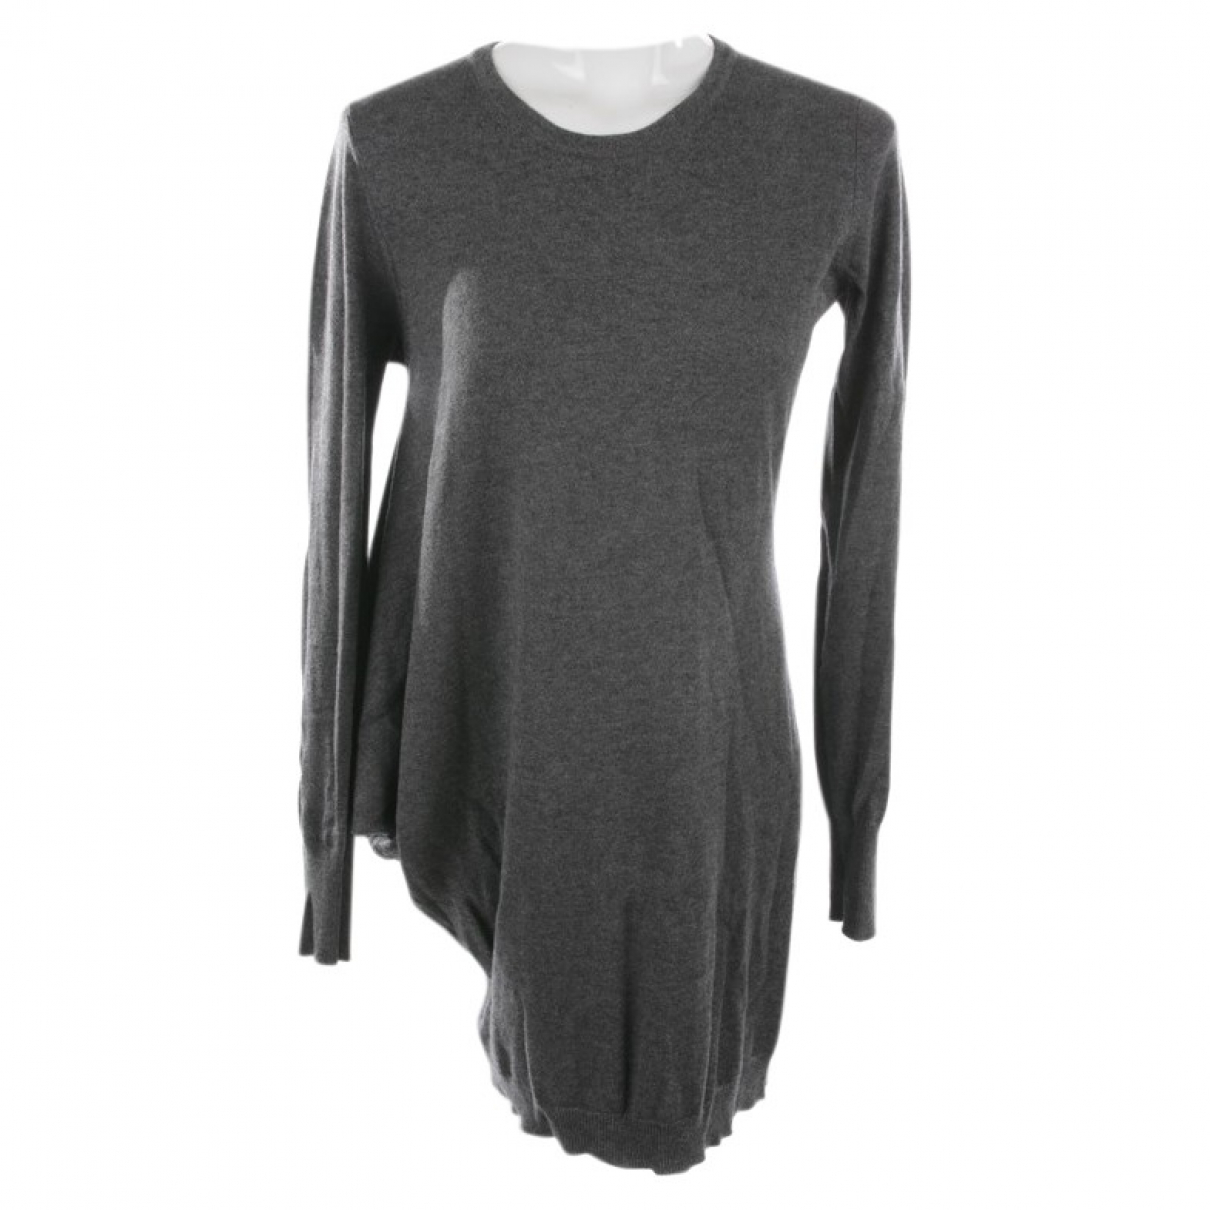 Barbara Bui \N Grey dress for Women XS International